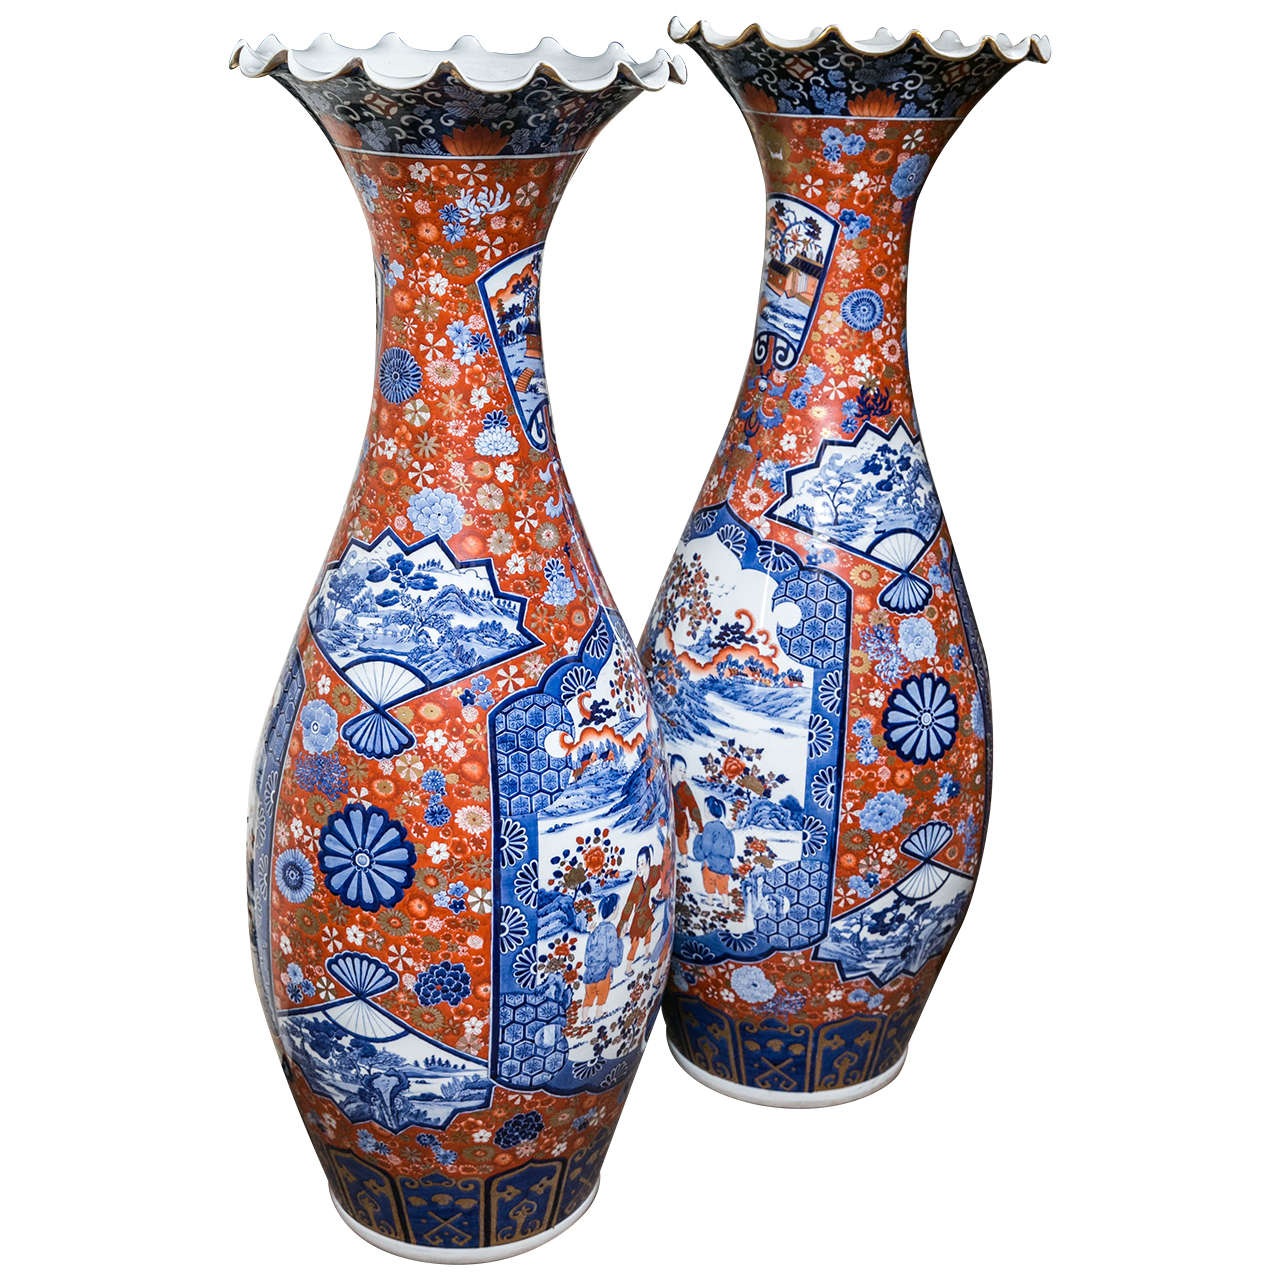 Large pair of late 17th c imari vases with cover for sale at 1stdibs large pair of imari floor vases reviewsmspy